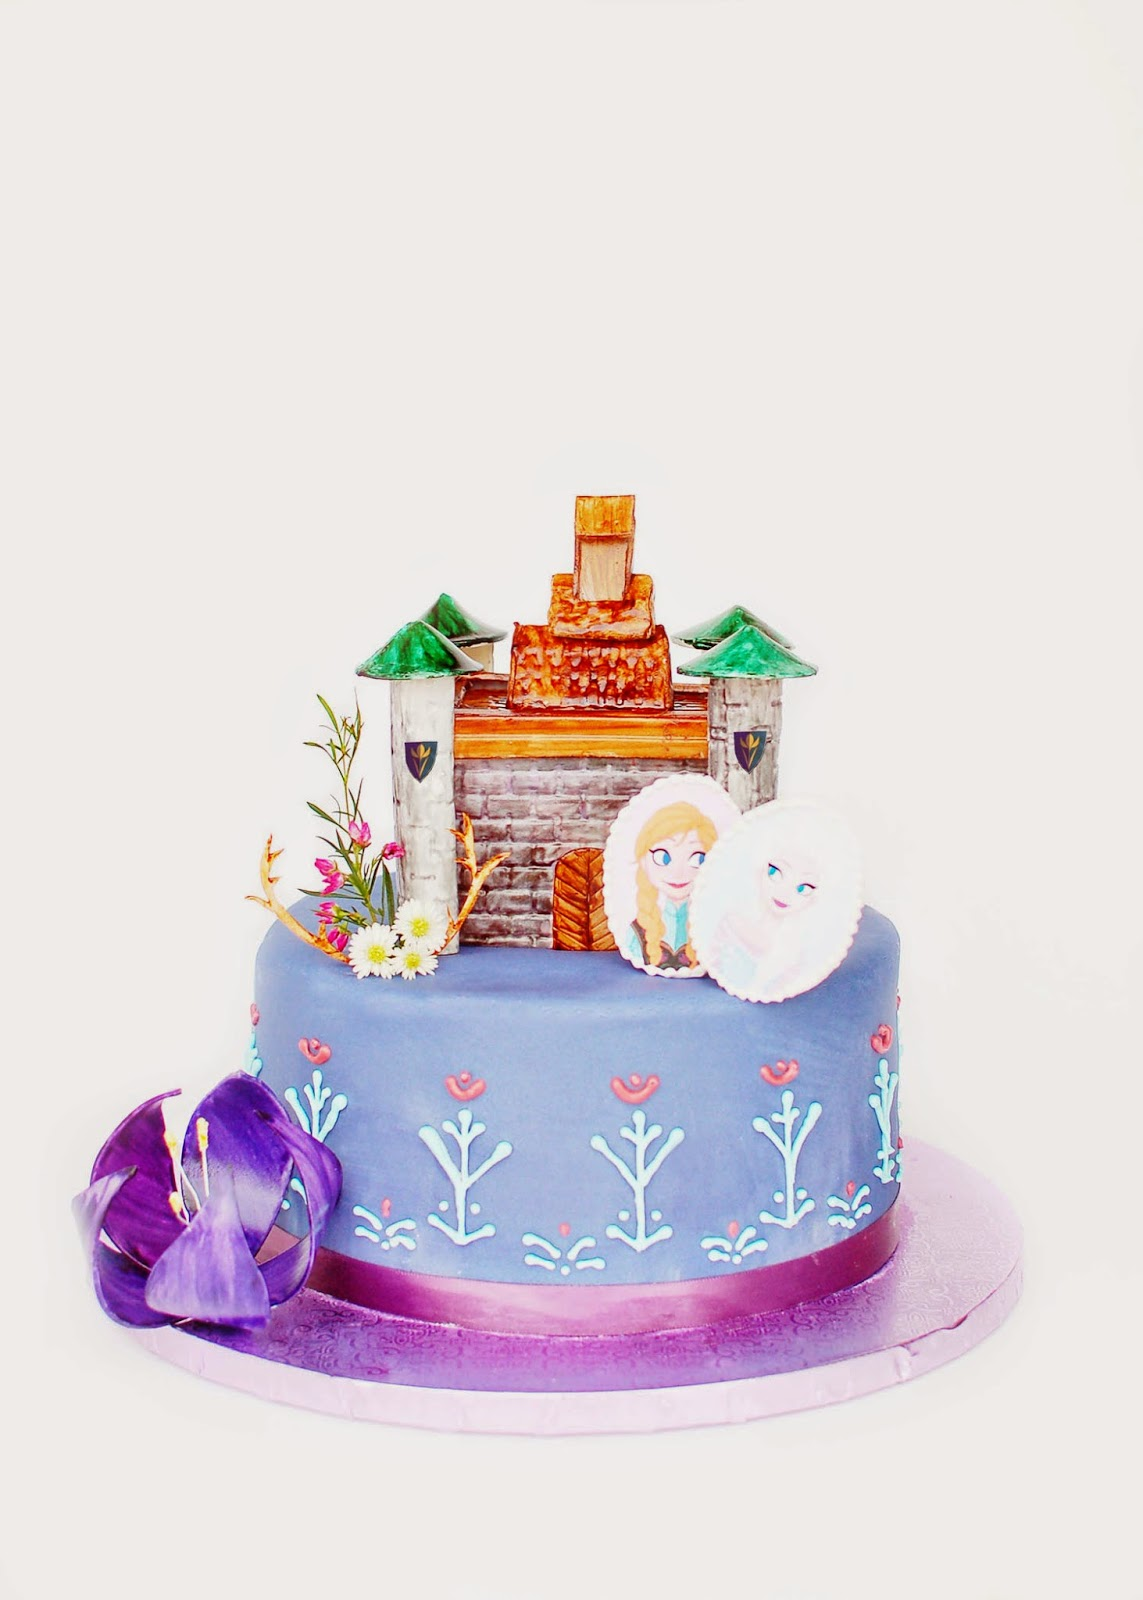 The Apothecakery Not Your Typical Frozen Cake